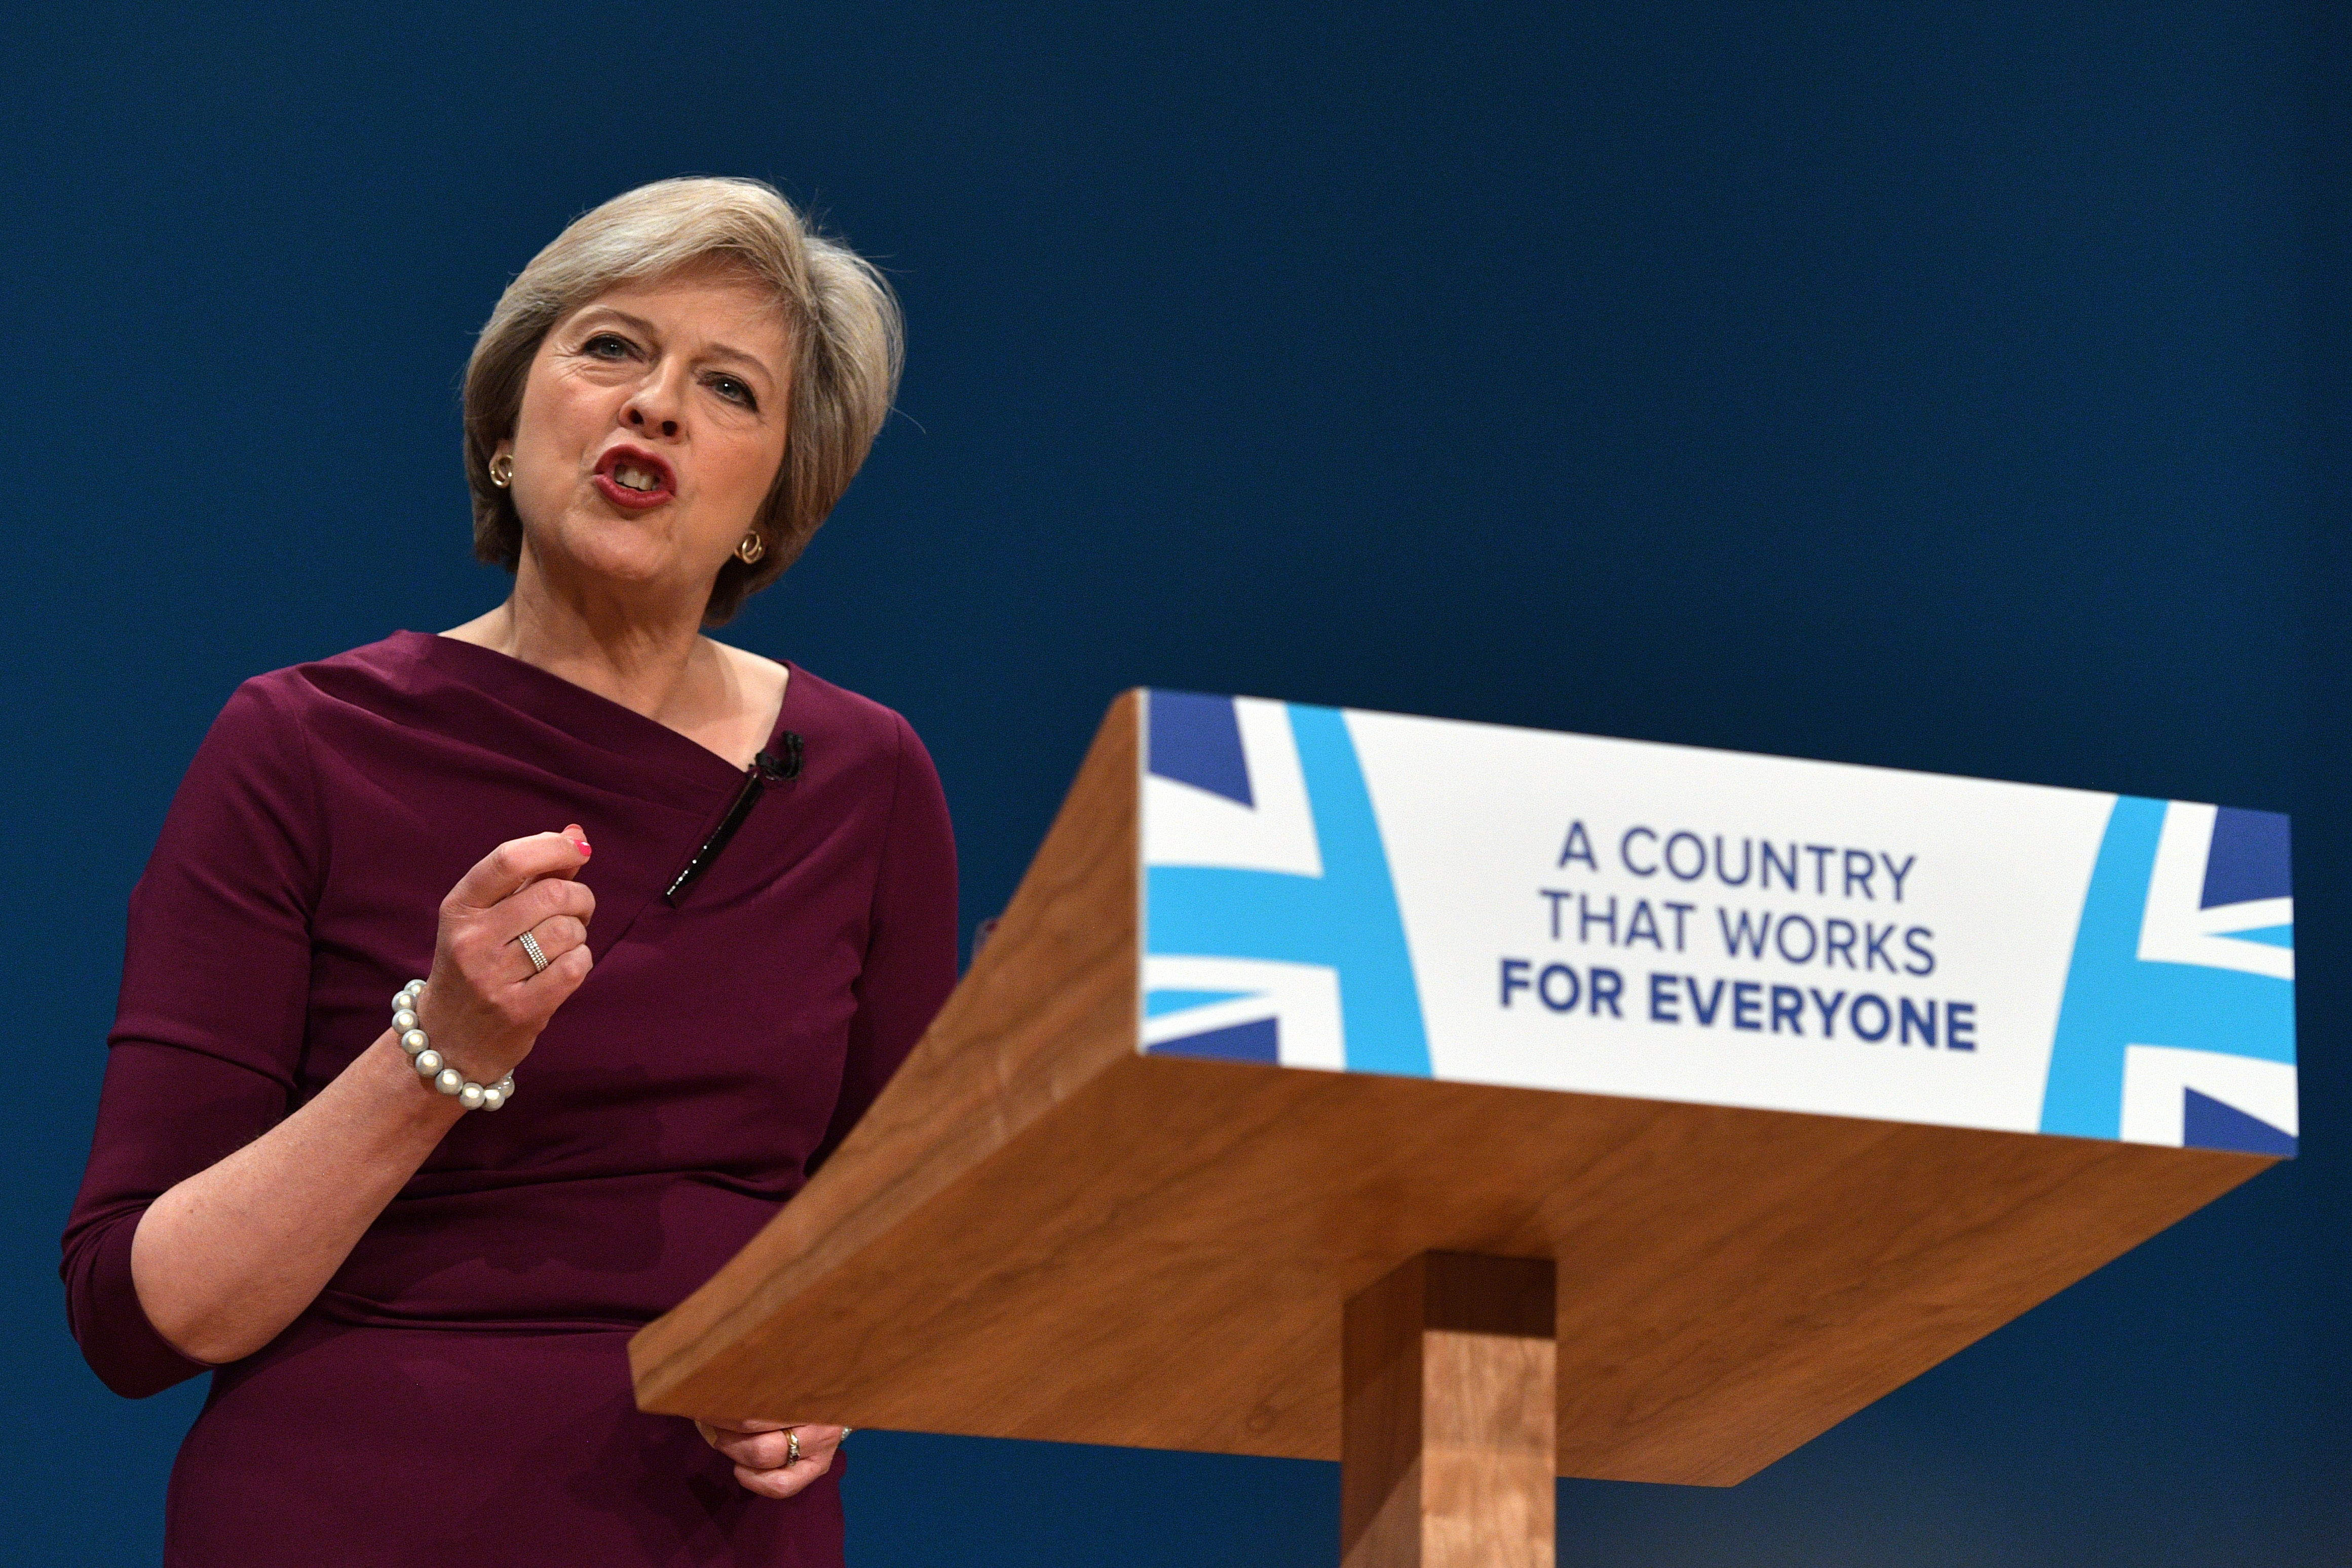 Theresa May, who took over as prime minister and leader of the Conservative Party in July, has been a long-standing proponent of increasing government surveillance powers.